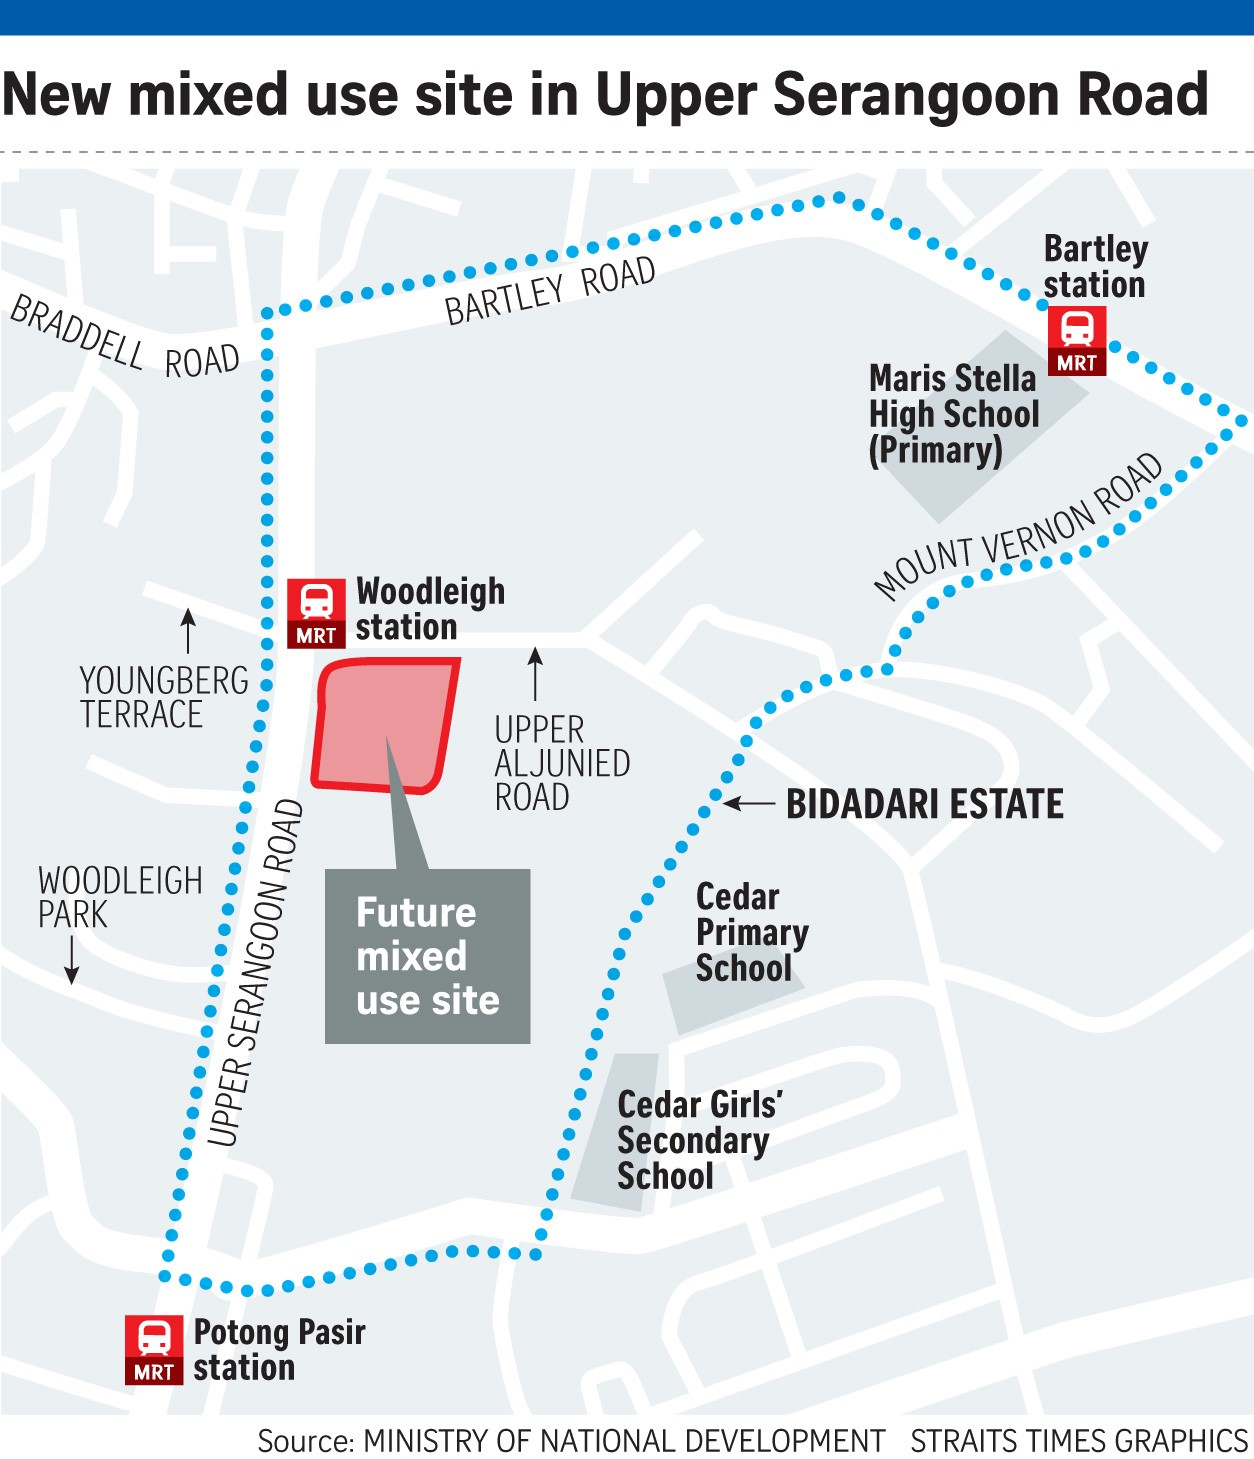 Singapore Property Launches - Upper Serangoon Road Condo